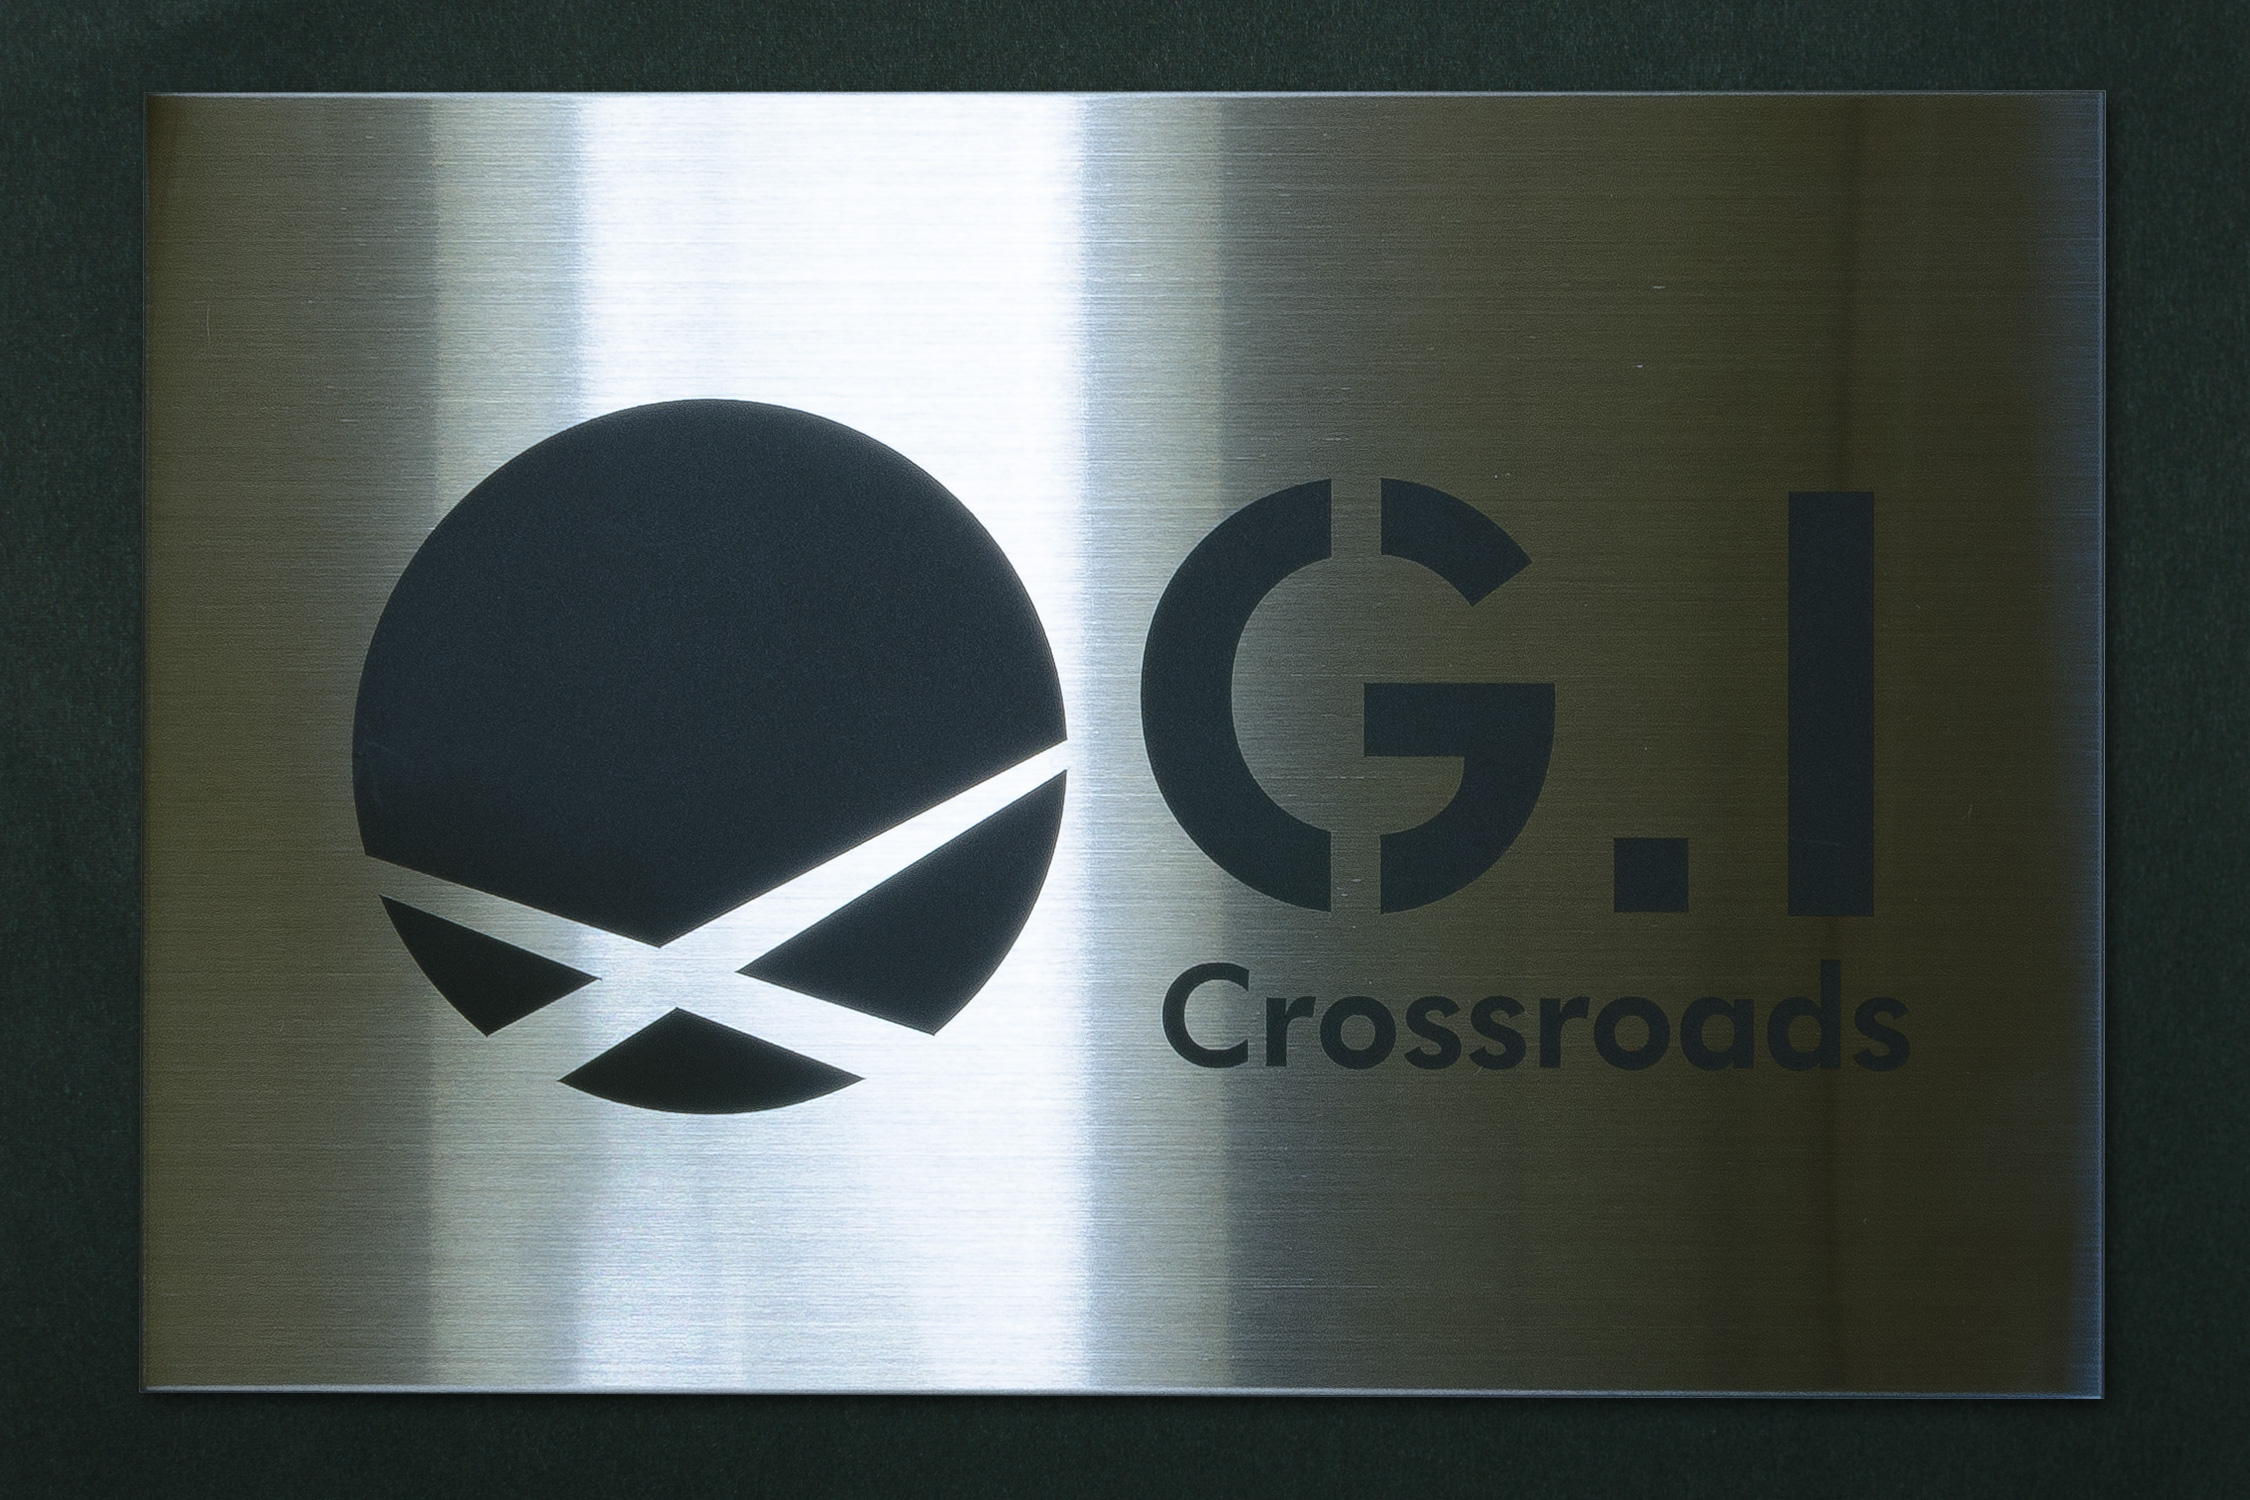 sign_g.i-crossroads_2